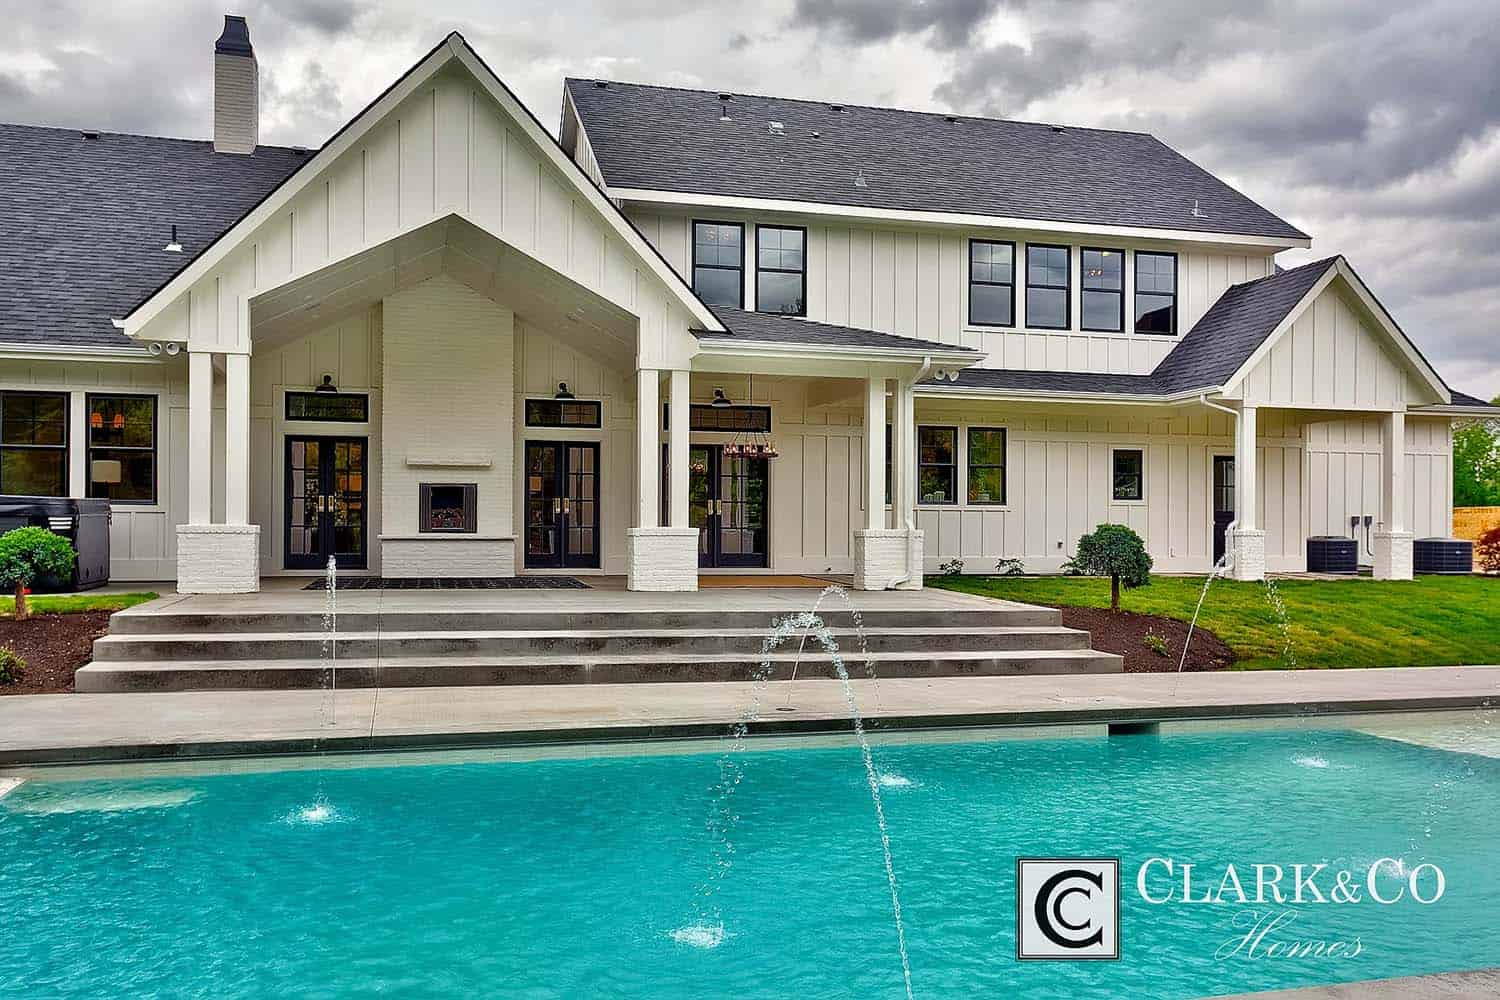 Modern Farmhouse Style-Clark and Co Homes-30-1 Kindesign